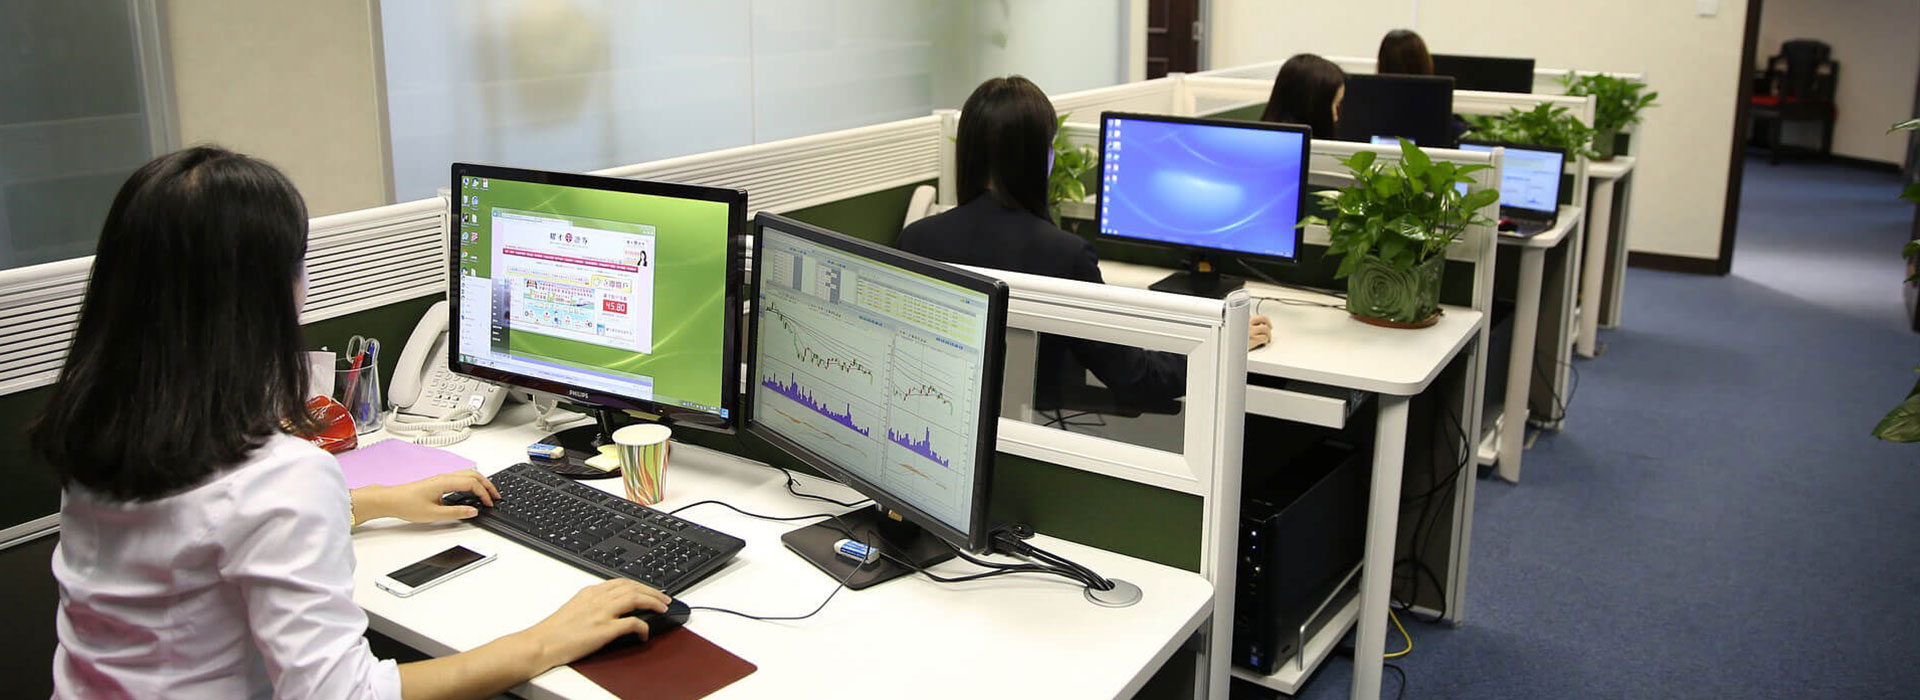 Business fibre in use in an office